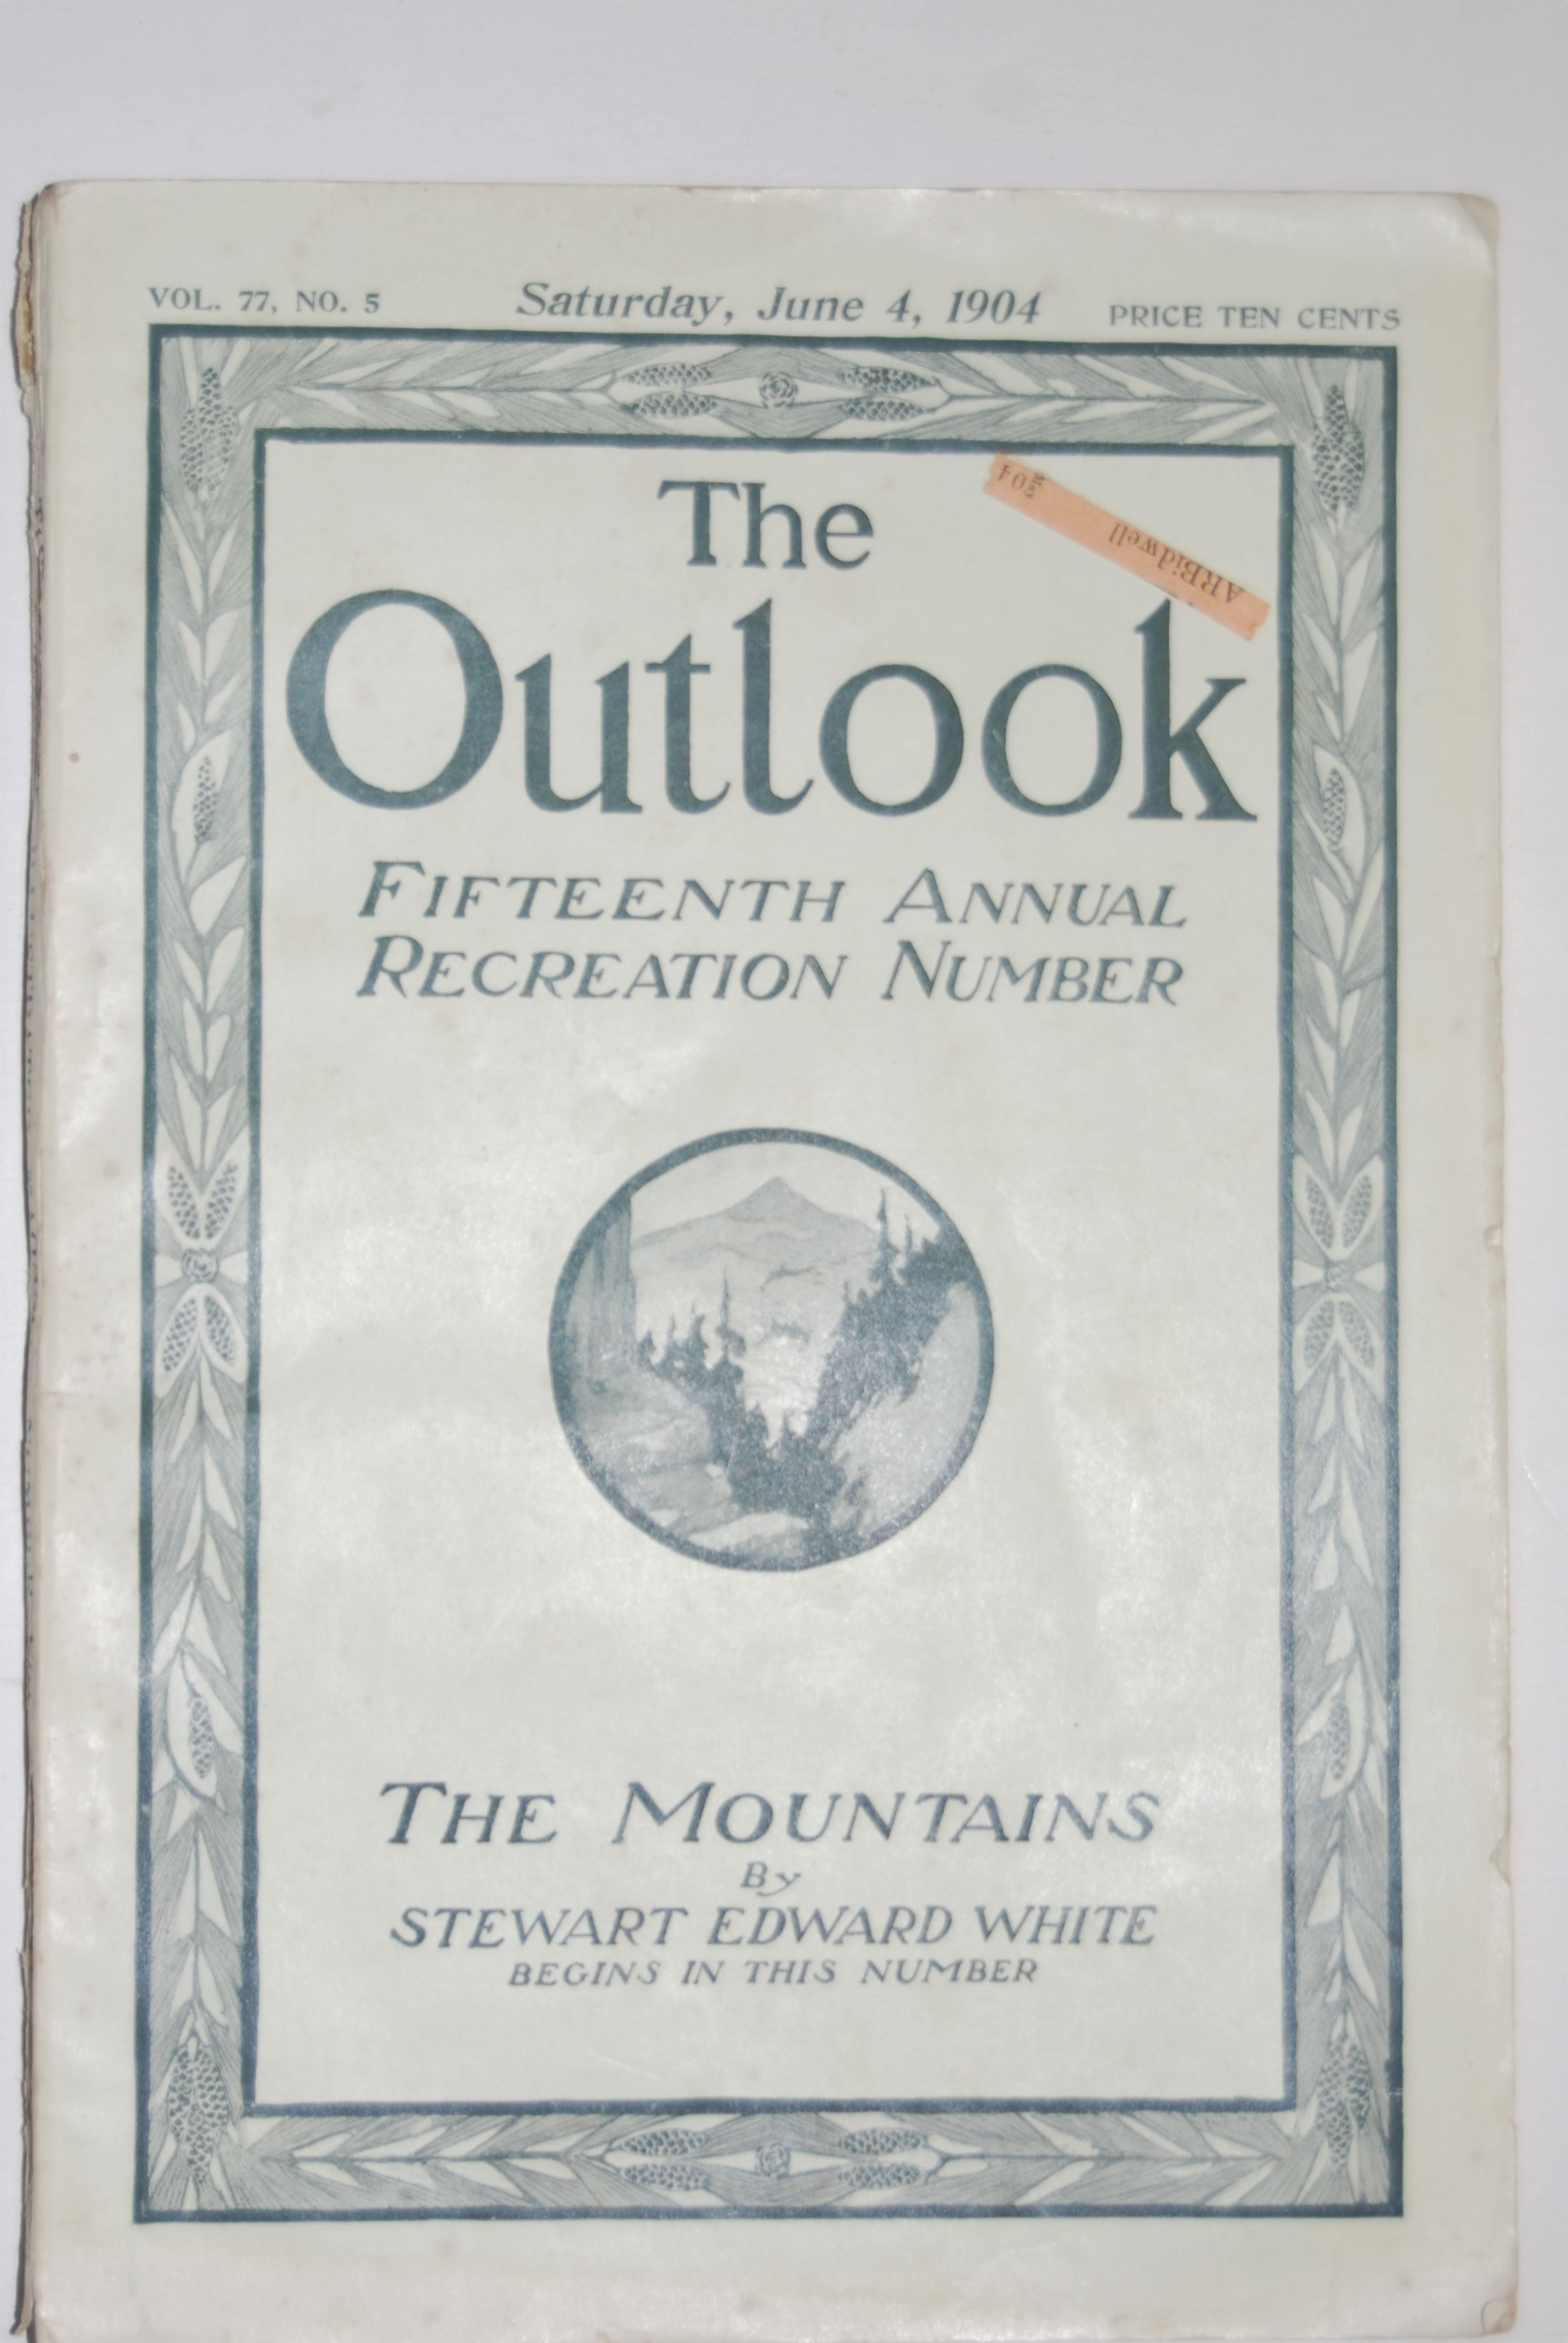 Image for THE OUTLOOK. Fifteenth Annual Recreation Number. Vol. 77 No. 5. Saturday, June 4, 1904. New York: The Outlook Co, pp. 239-334. 1904. Paper Wraps. 8vo illus.